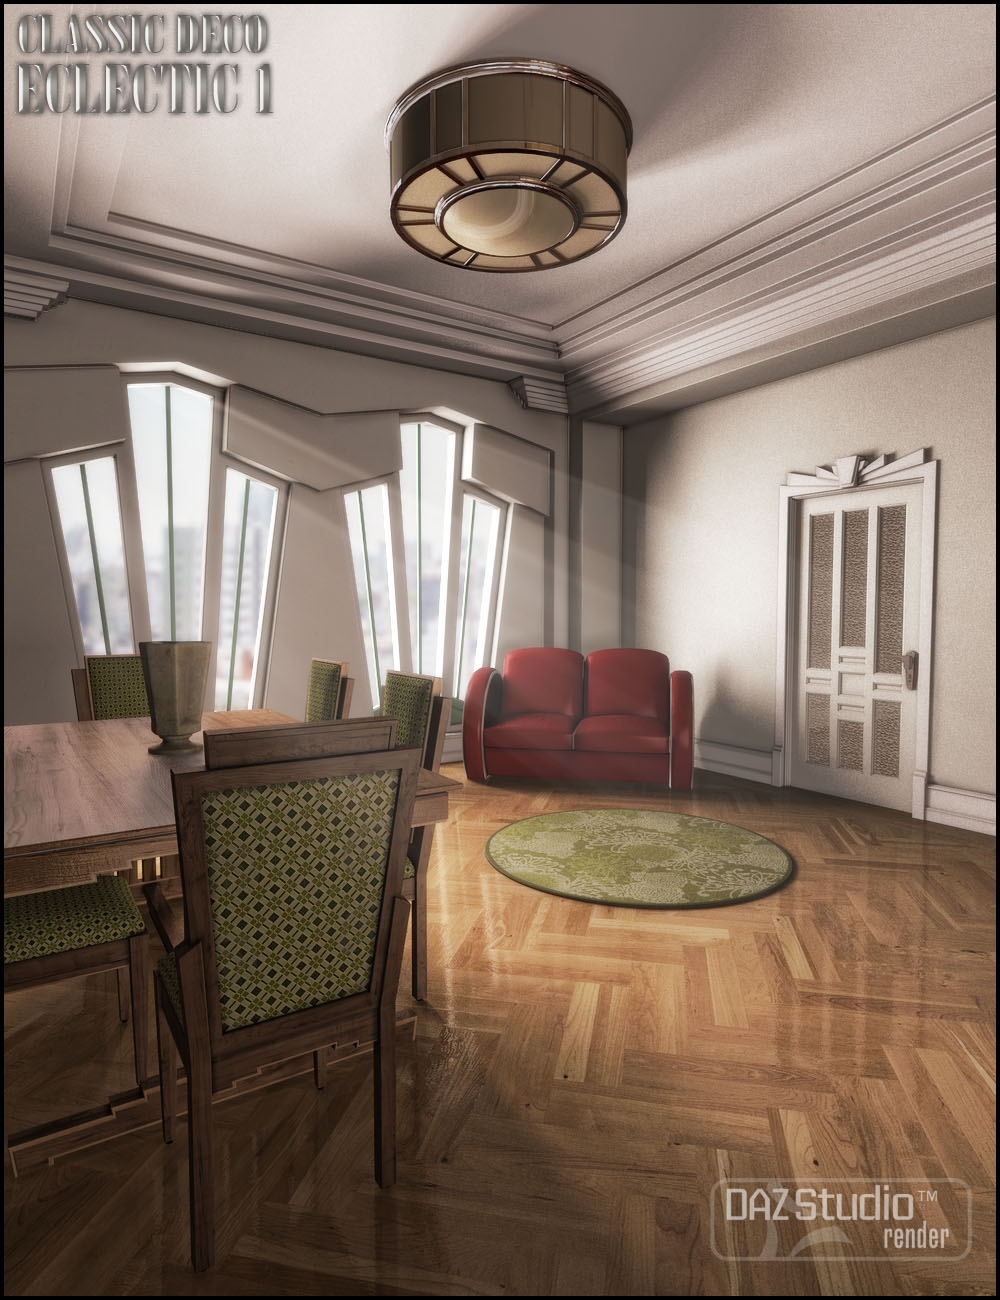 Classic Deco: Eclectic 1 by: Jack Tomalin, 3D Models by Daz 3D